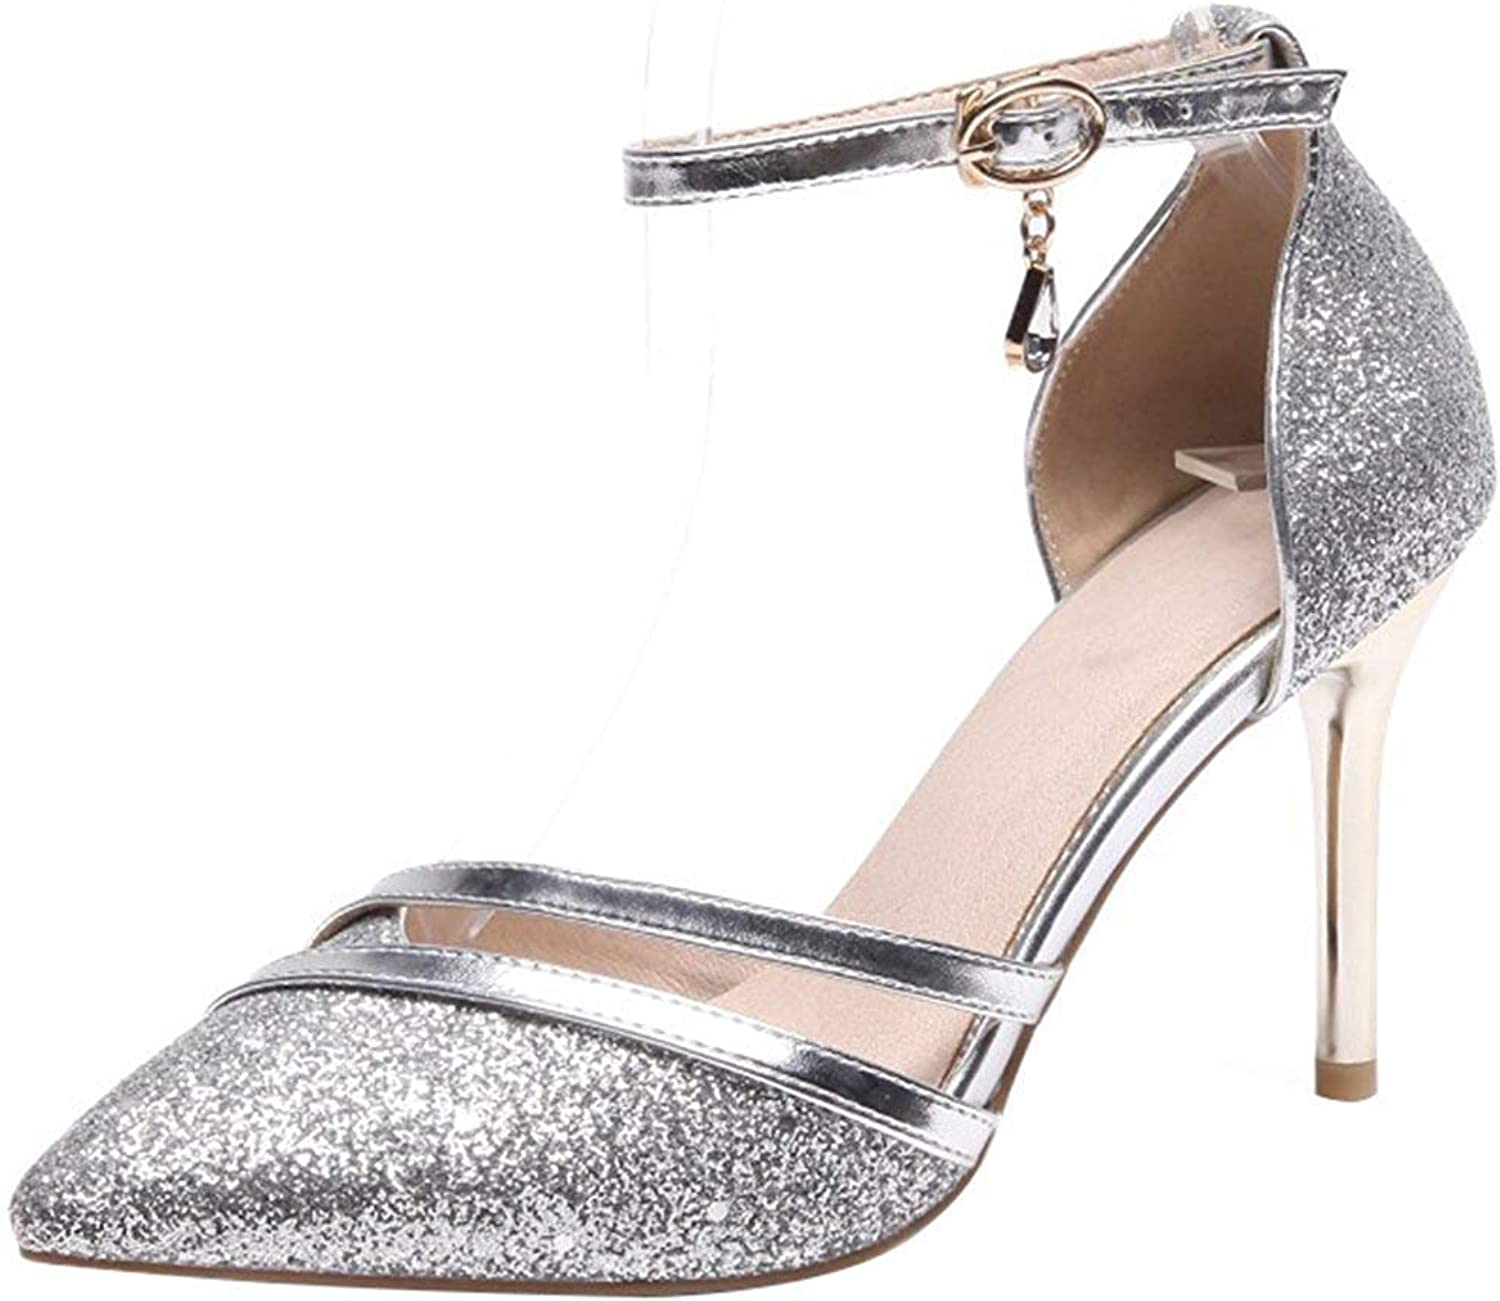 Lelehwhge Women's Sexy Pointed Toe Sequined Sandals - Buckle Ankle Strap Pendant - Stiletto High Heels Club shoes Silver 7.5 M US